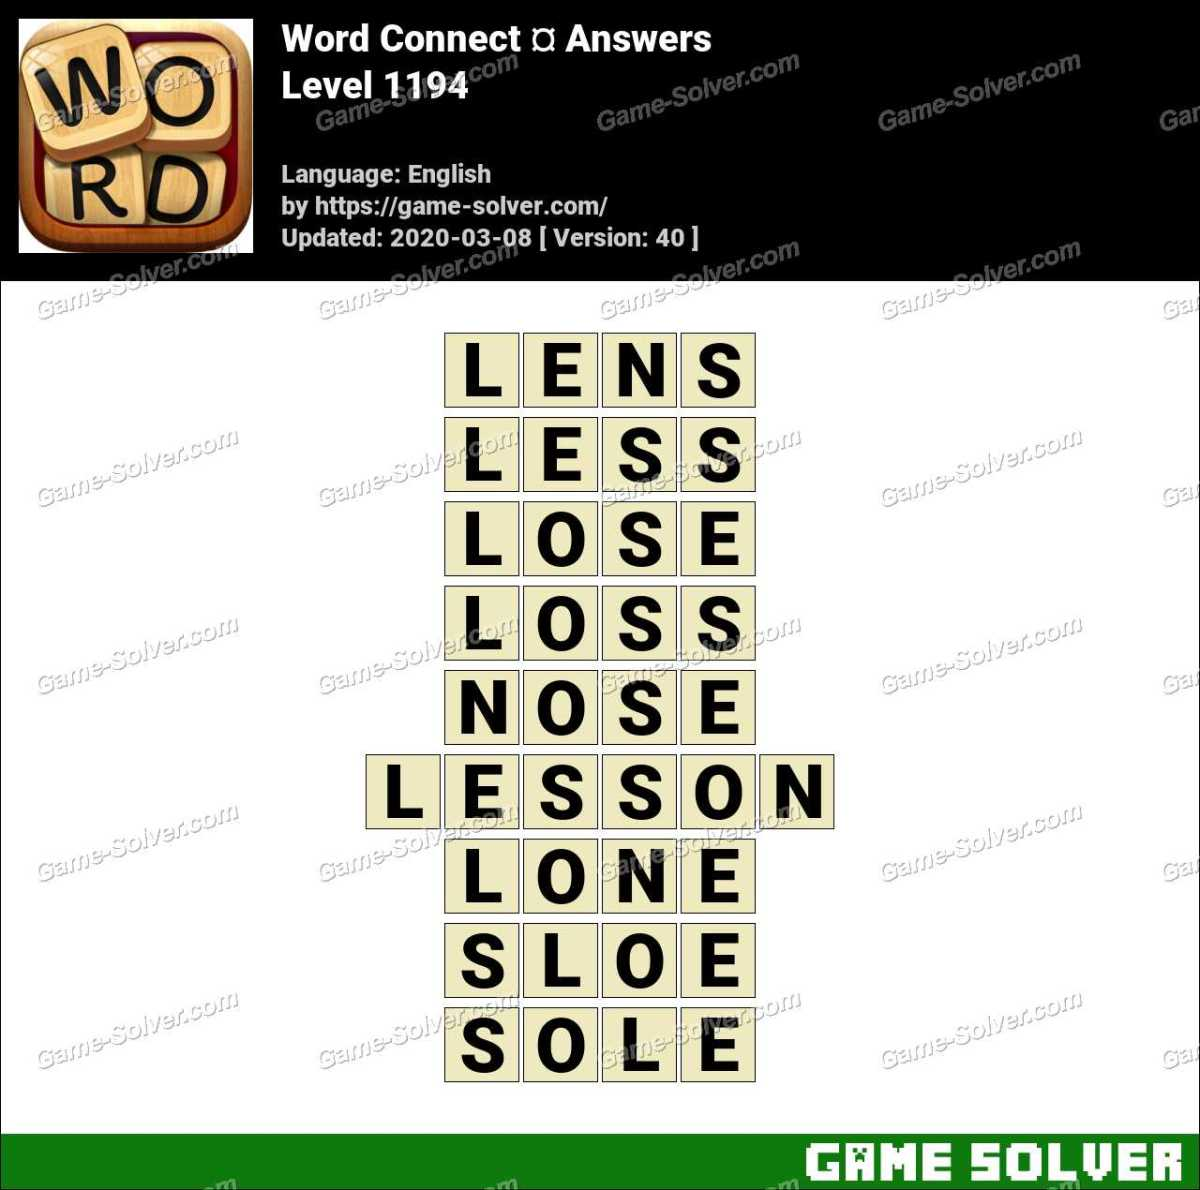 Word Connect Level 1194 Answers